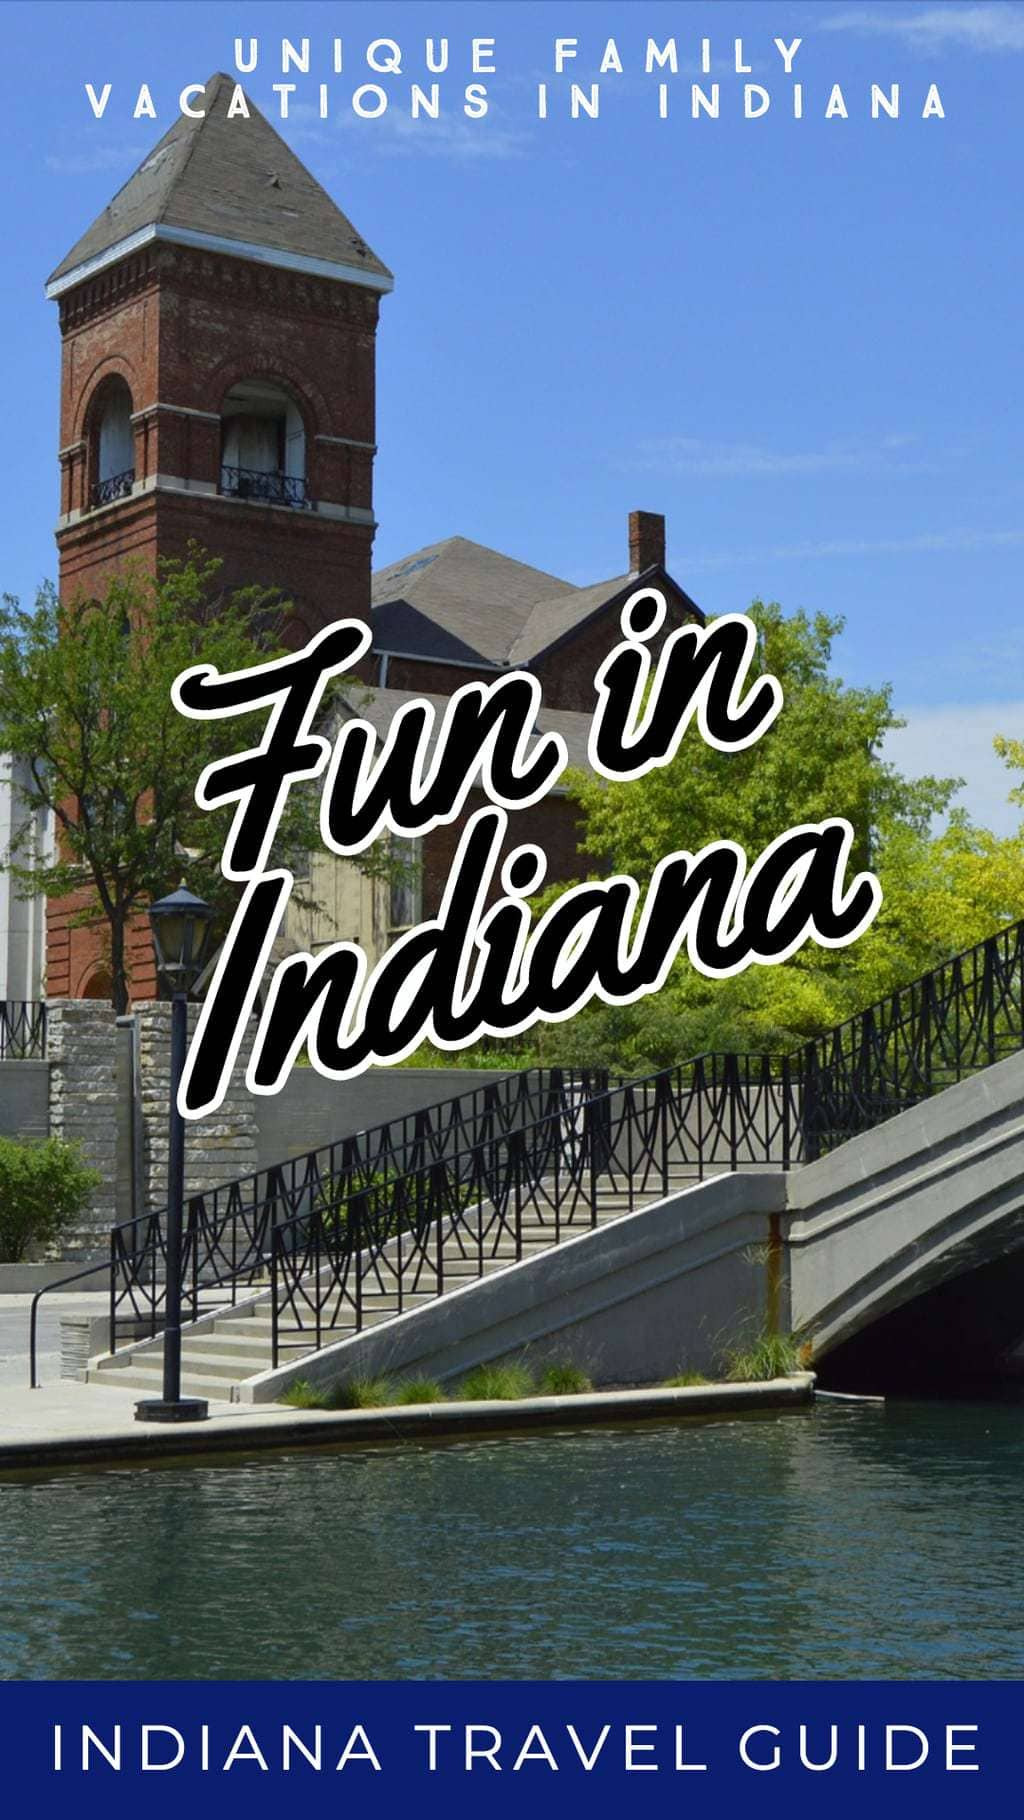 Whether you are coming to Indiana to visit family or just for fun you will find lots of fun attractions in Indiana for the whole family.